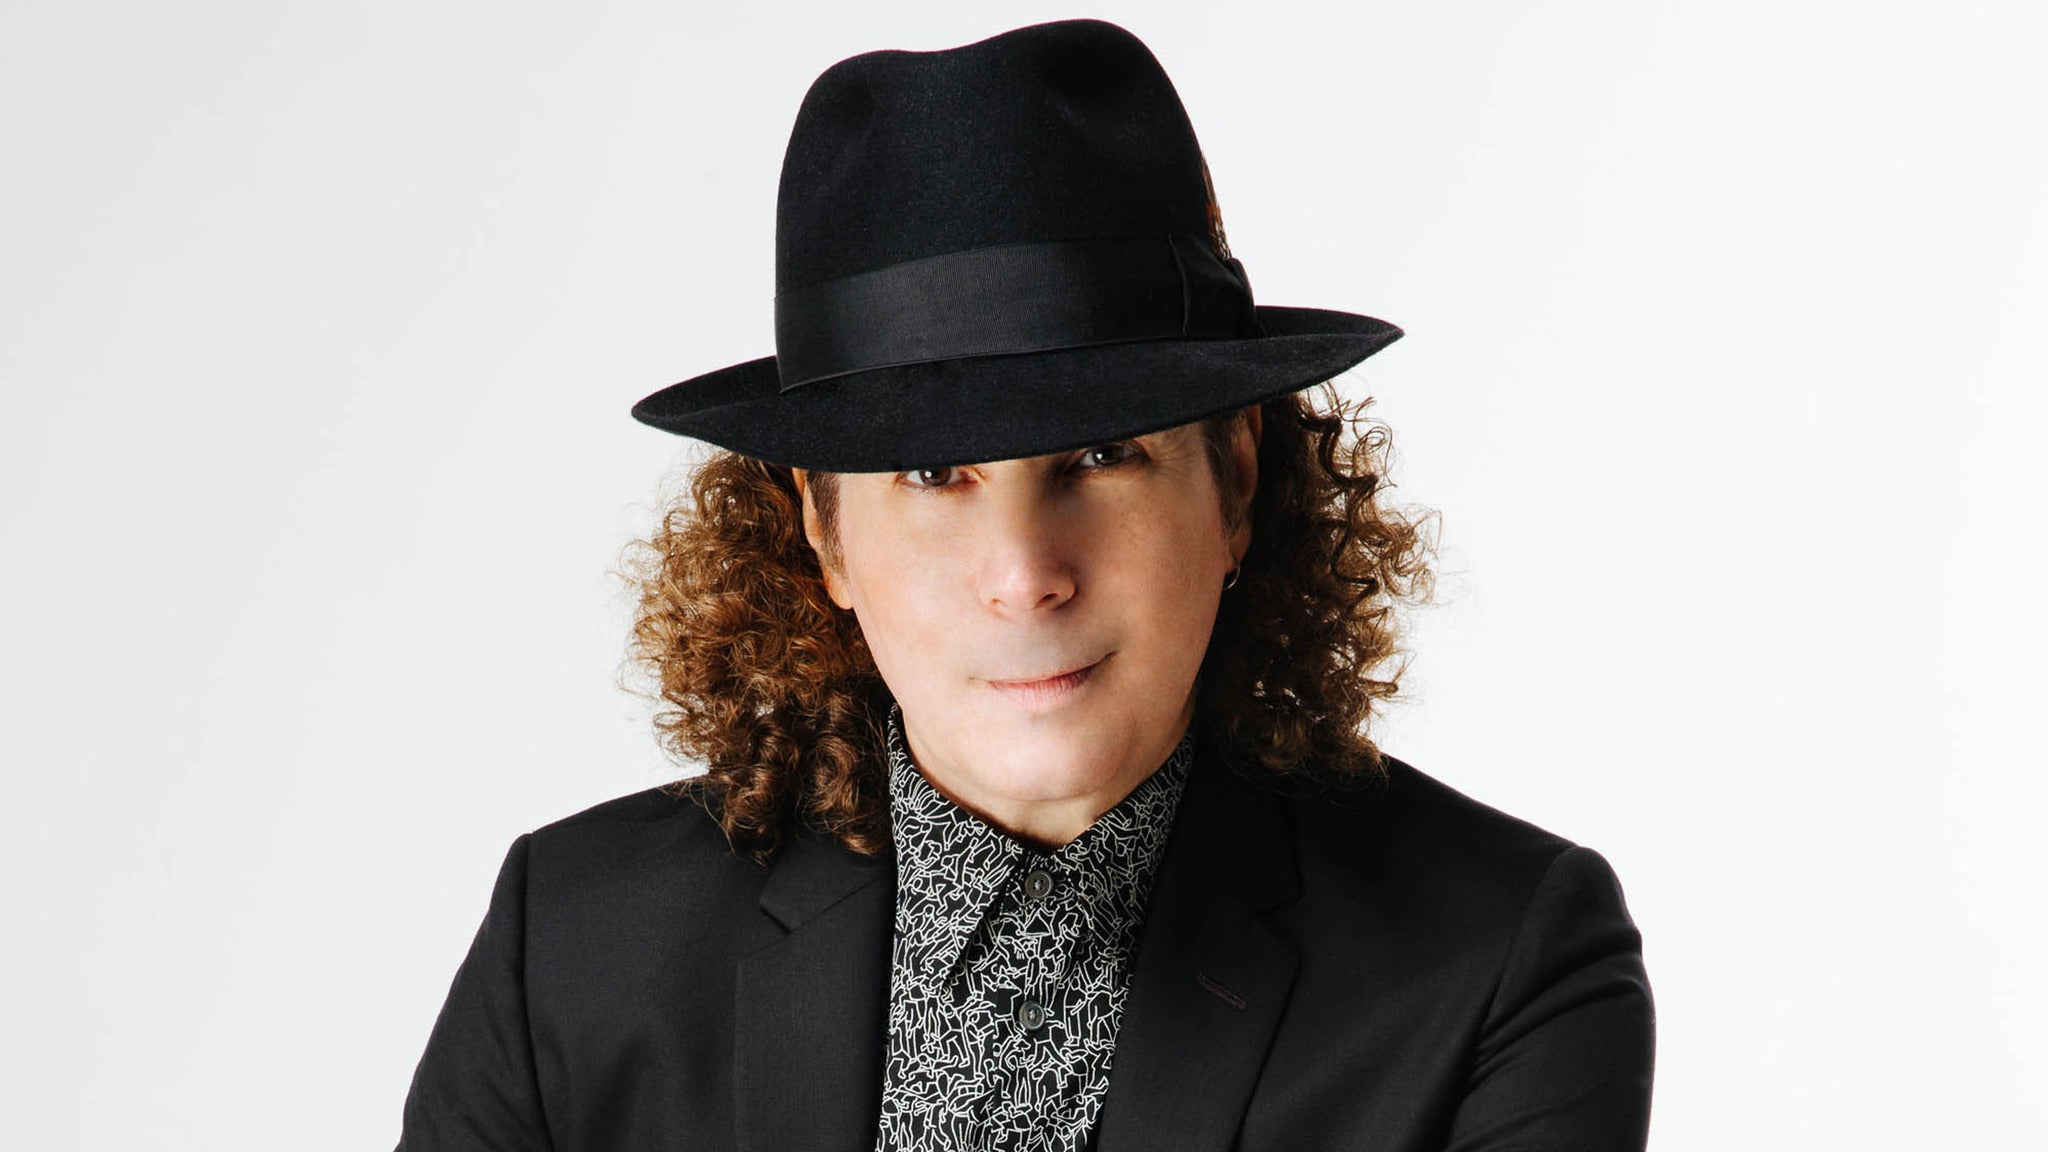 Boney James at Plaza Live - Orlando